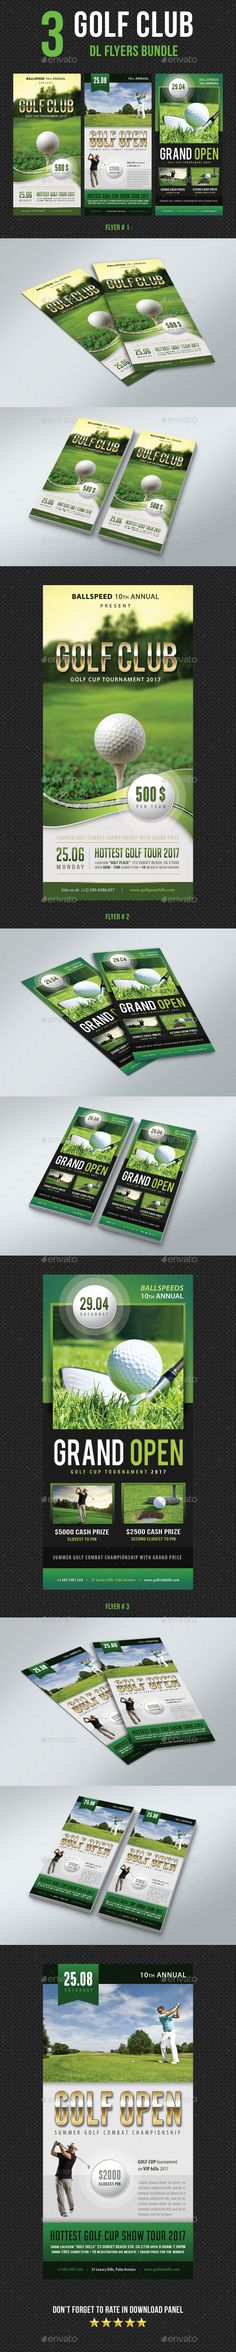 3 in 1 Golf Club DL Flyer Bundle V1 by rapidgraf Pack included: 3 DL Flyers 3 PSD files Print size: 2.246.24 inches Trim /fina/ size: 26 inches Print Ready CMYK, 300d